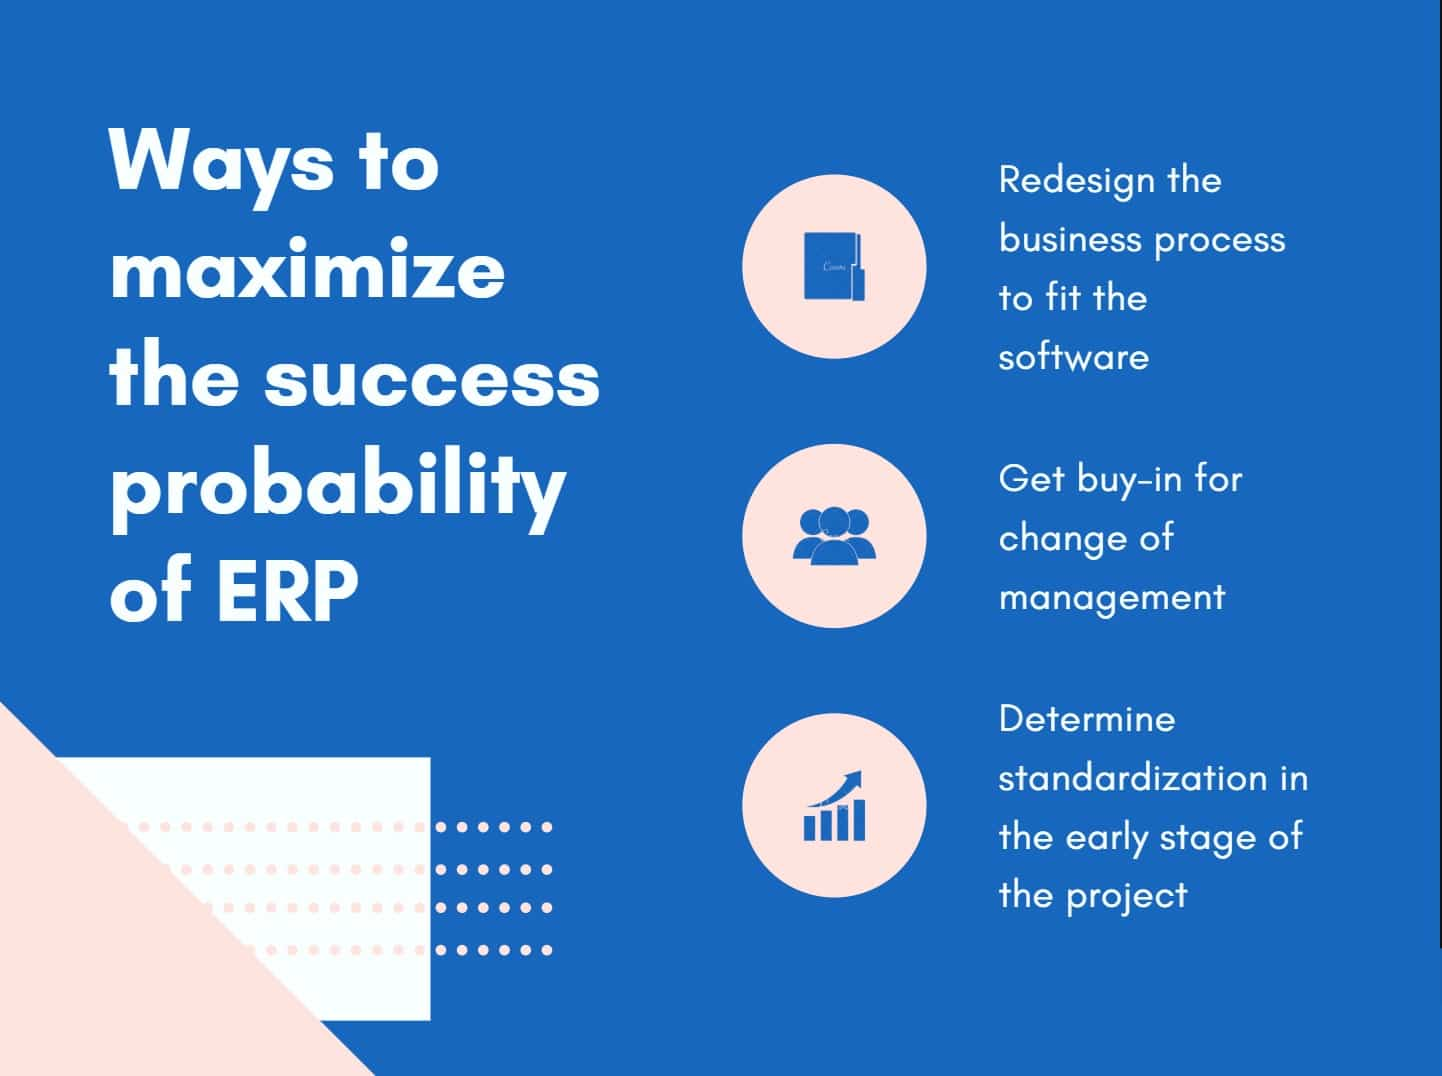 ways to maximize the success probability of ERP implementation